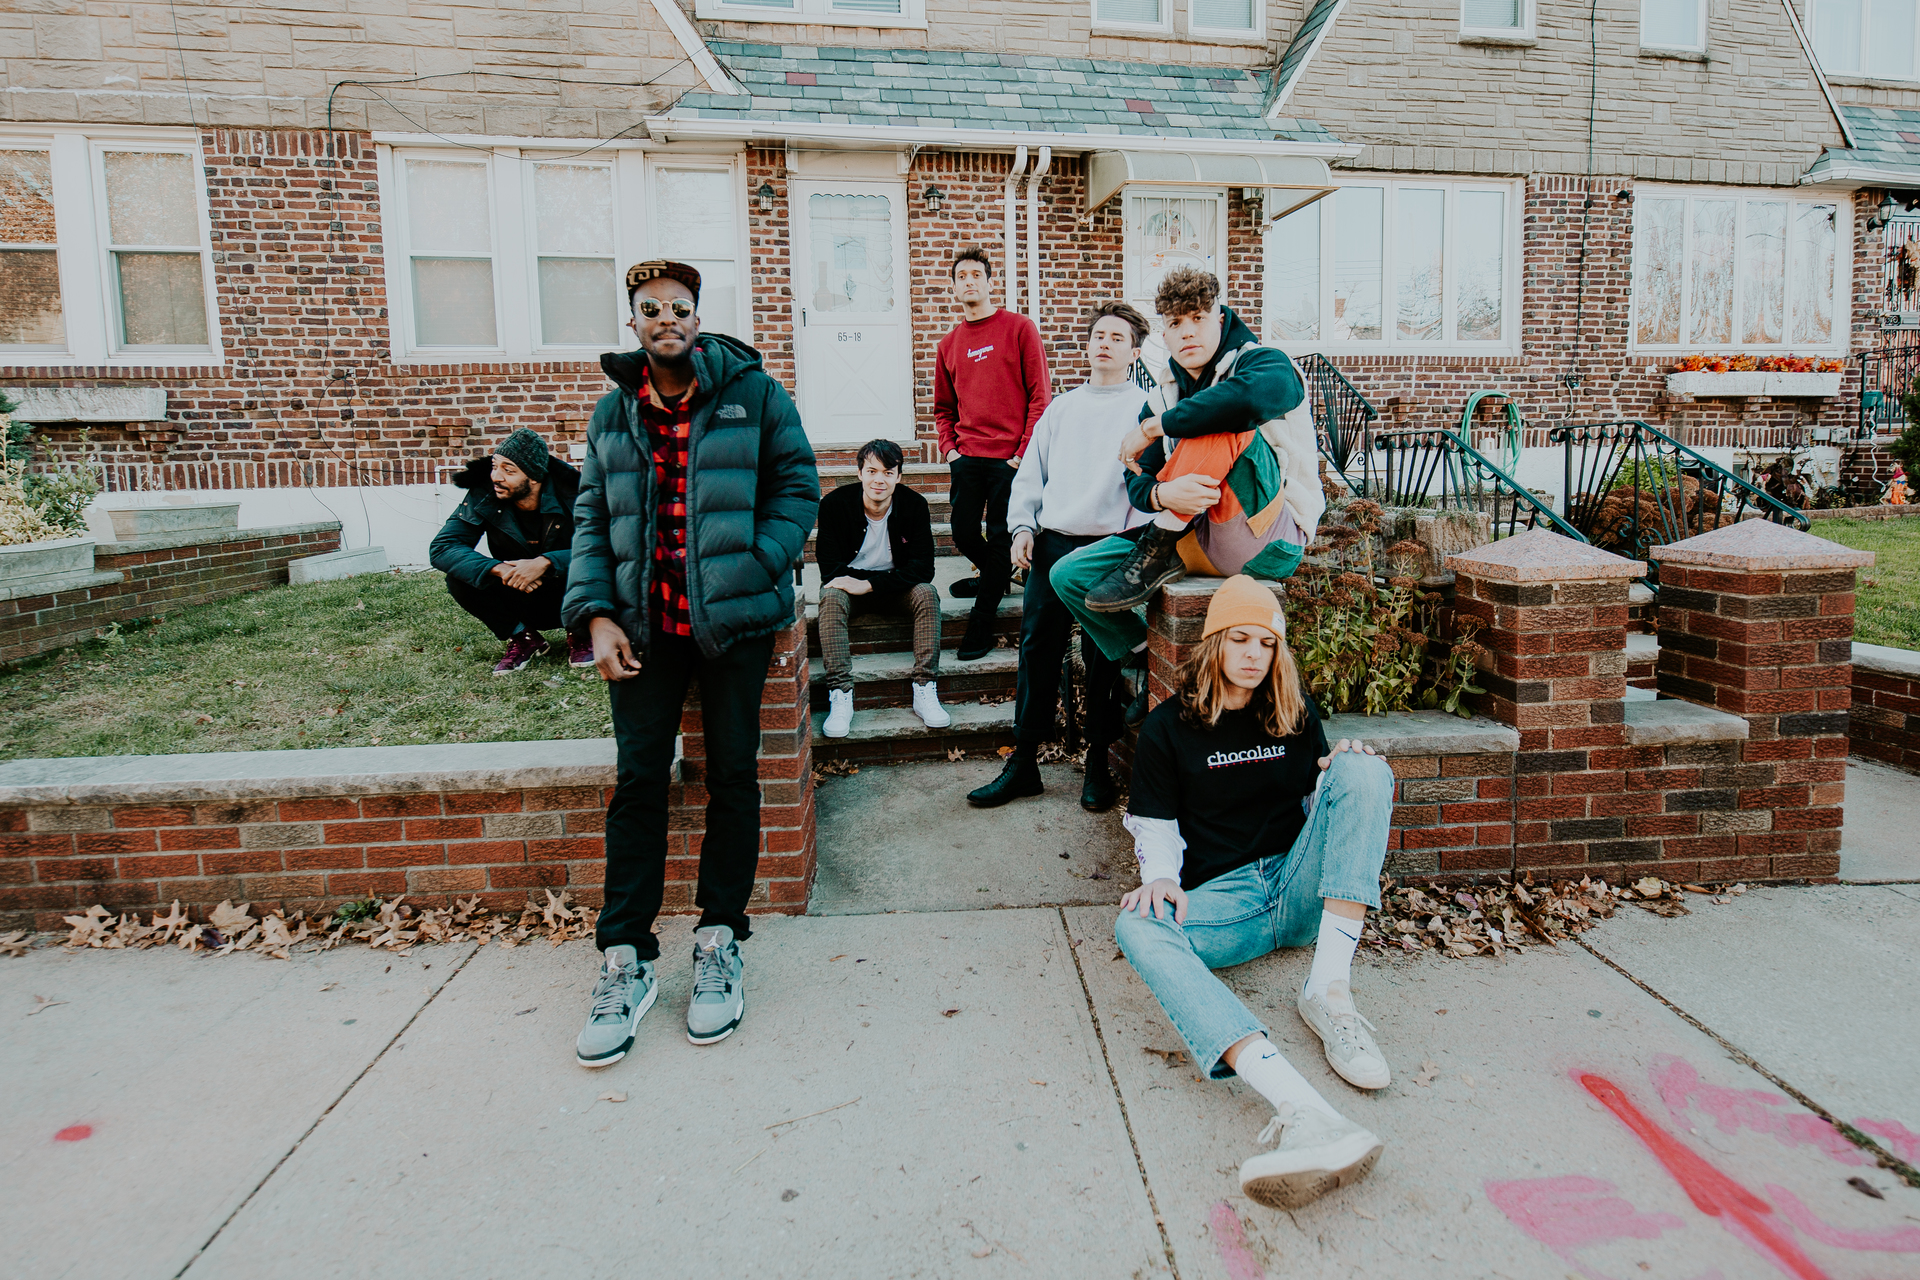 New York collective JUICE release new single + music video